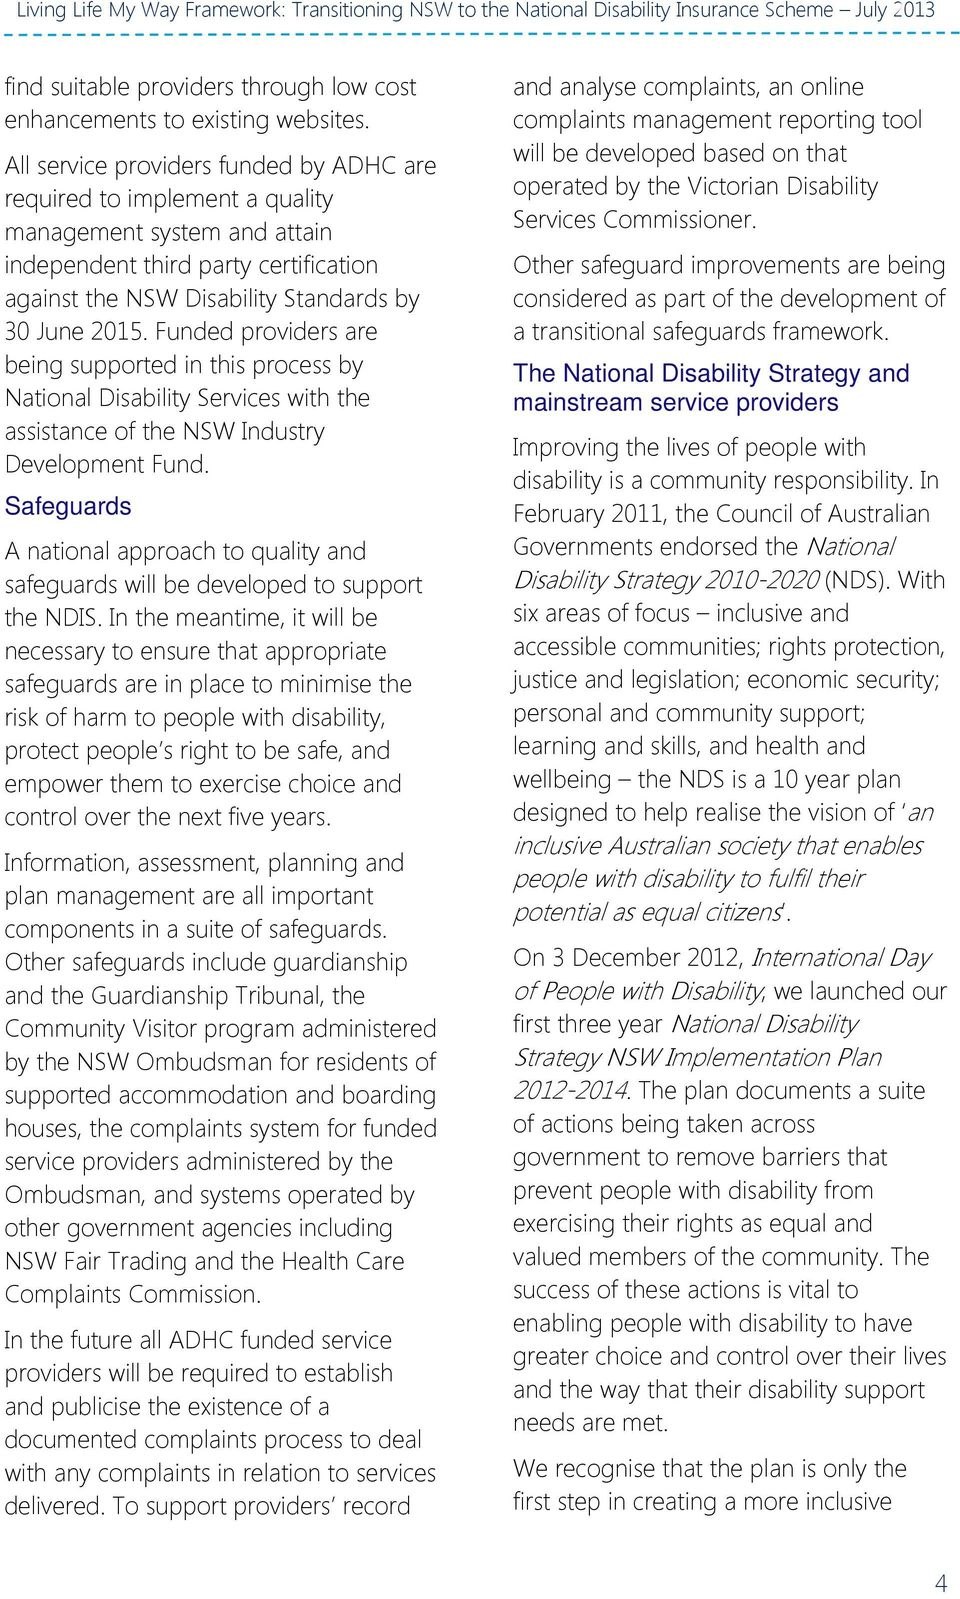 Funded providers are being supported in this process by National Disability Services with the assistance of the NSW Industry Development Fund.